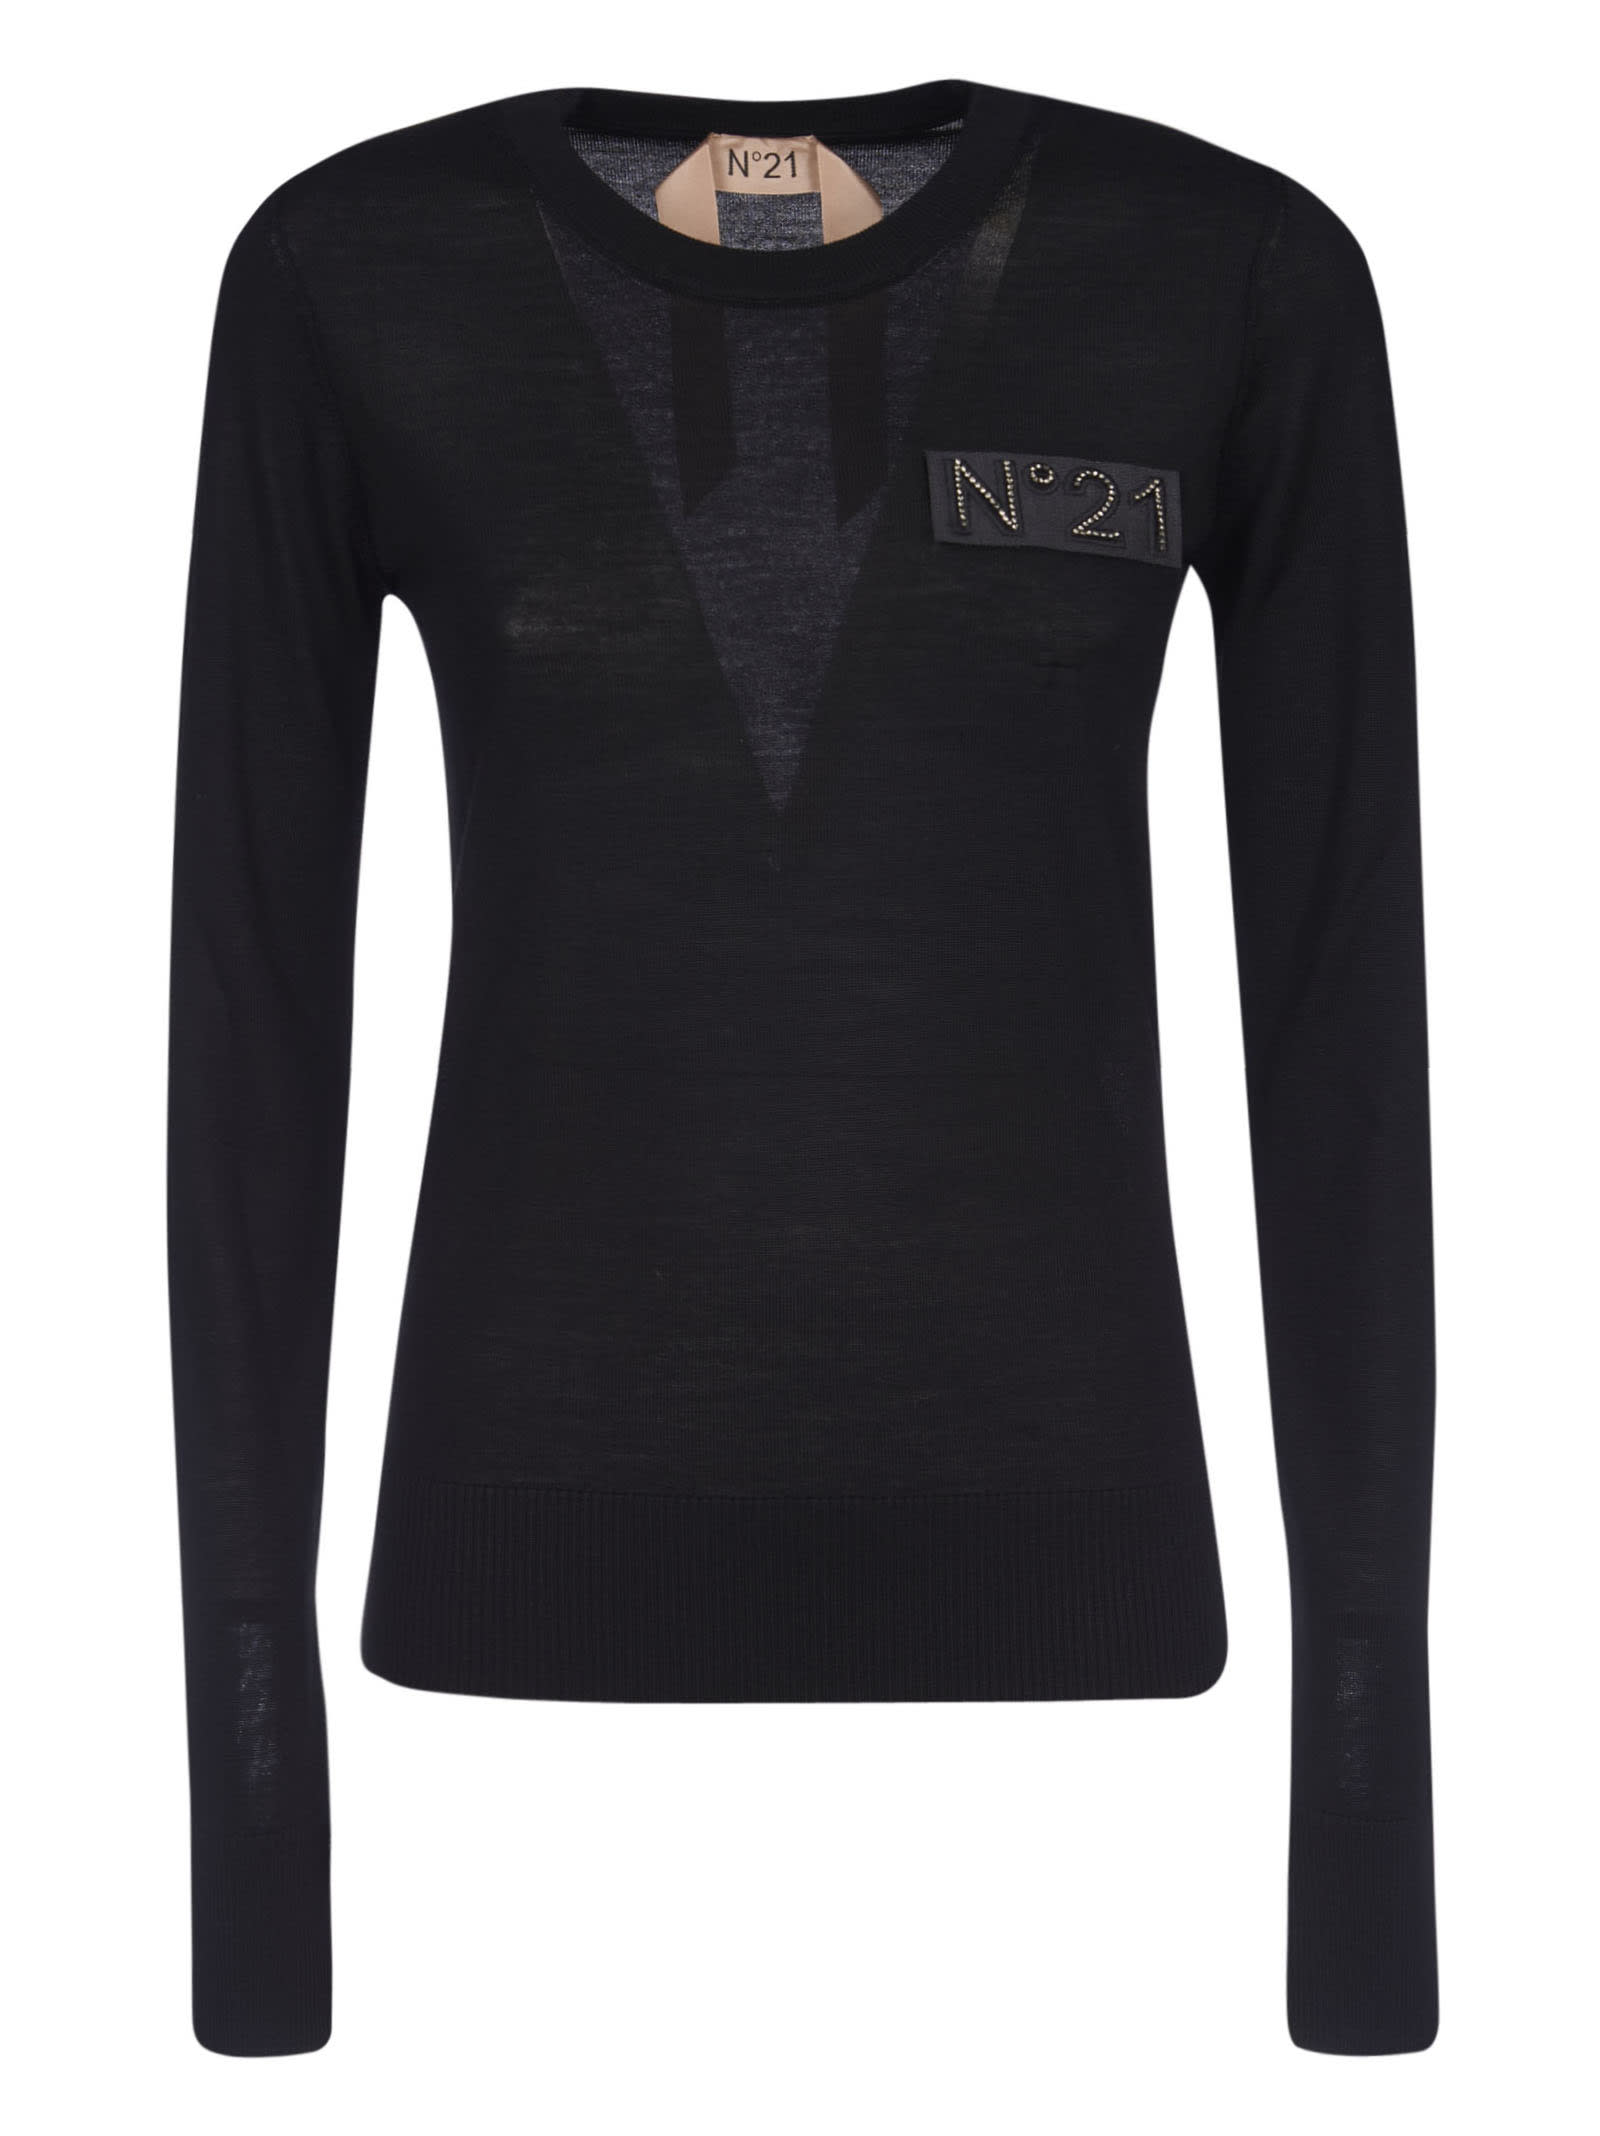 N.21 Logo Patched Top